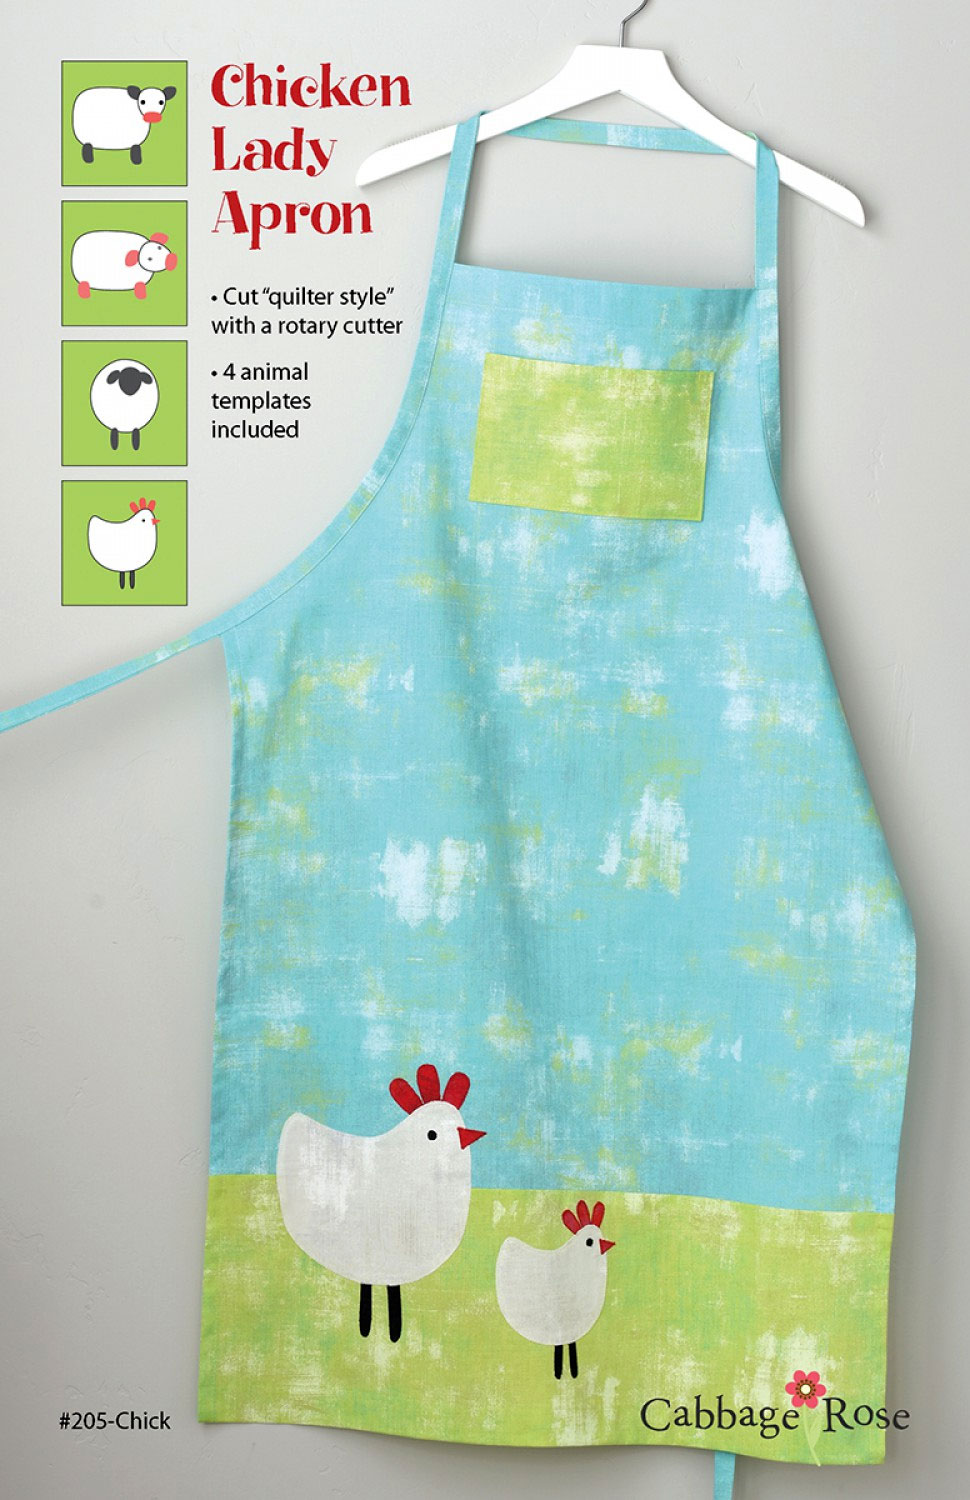 Chicken-Lady-Apron-sewing-pattern-Cabbage-Rose-front